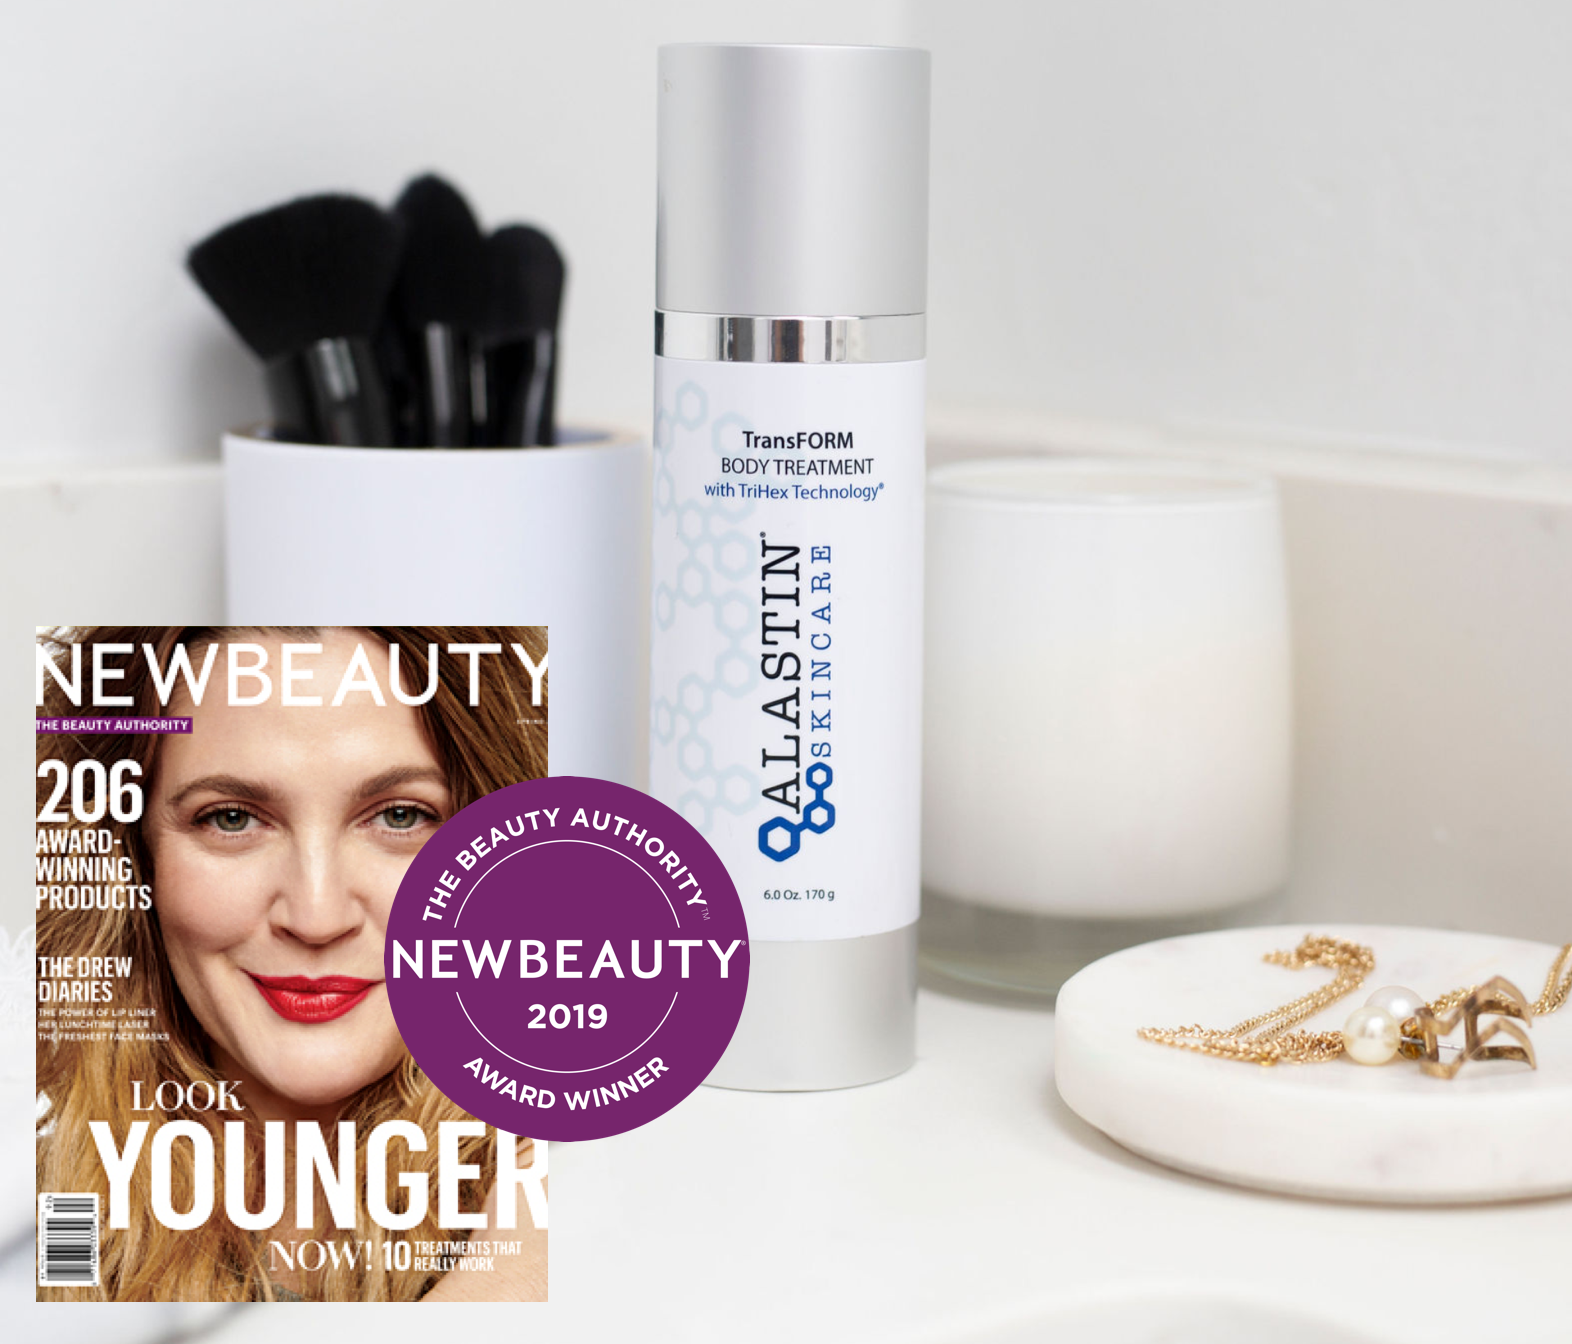 NewBeauty Innovation Award | ALASTIN Skincare